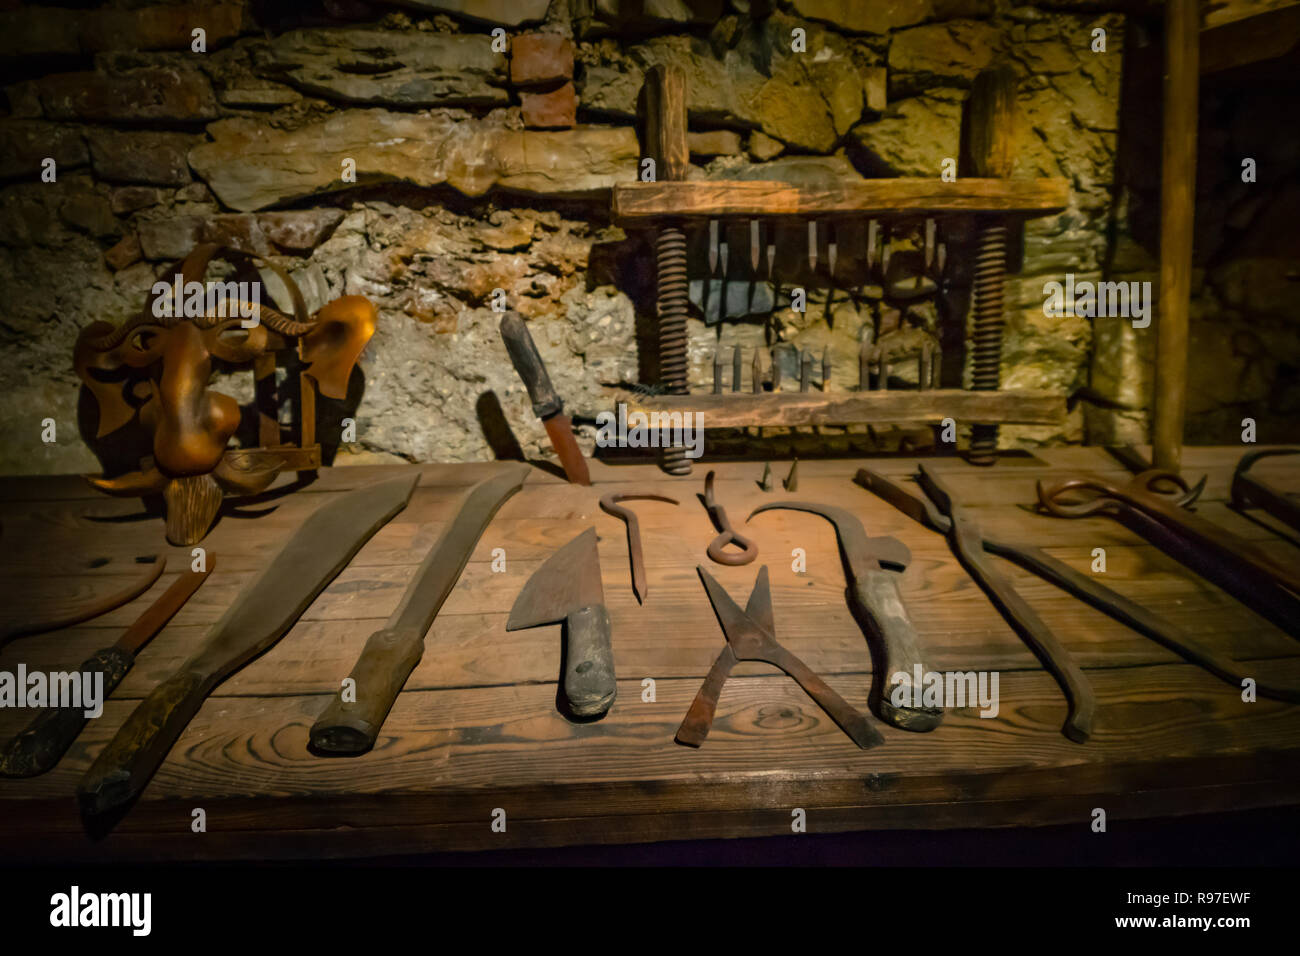 Mittelalter Küchengeräte Torture Tools Stockfotos And Torture Tools Bilder Alamy